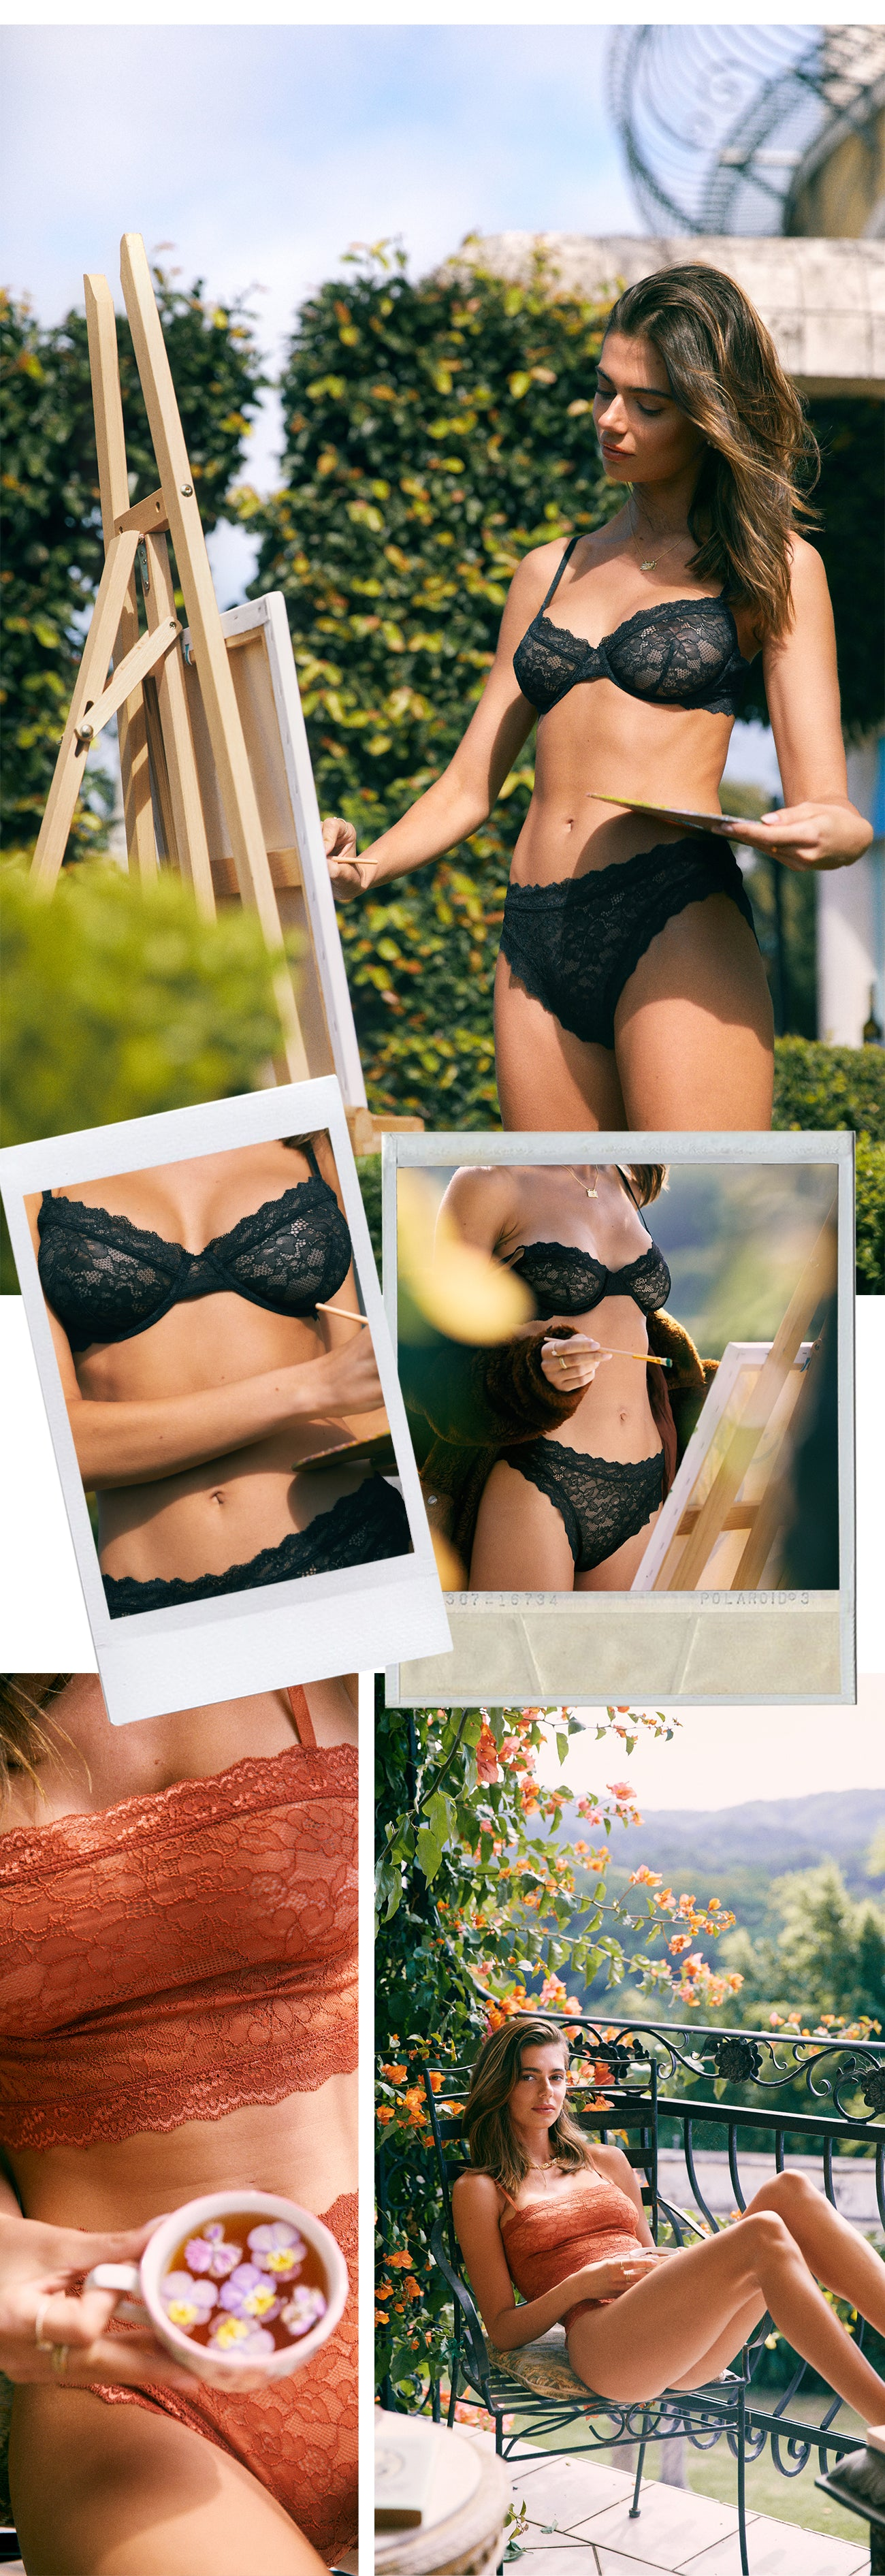 New sustainable lace lingerie from Arnhem in drop one of Golden Hour